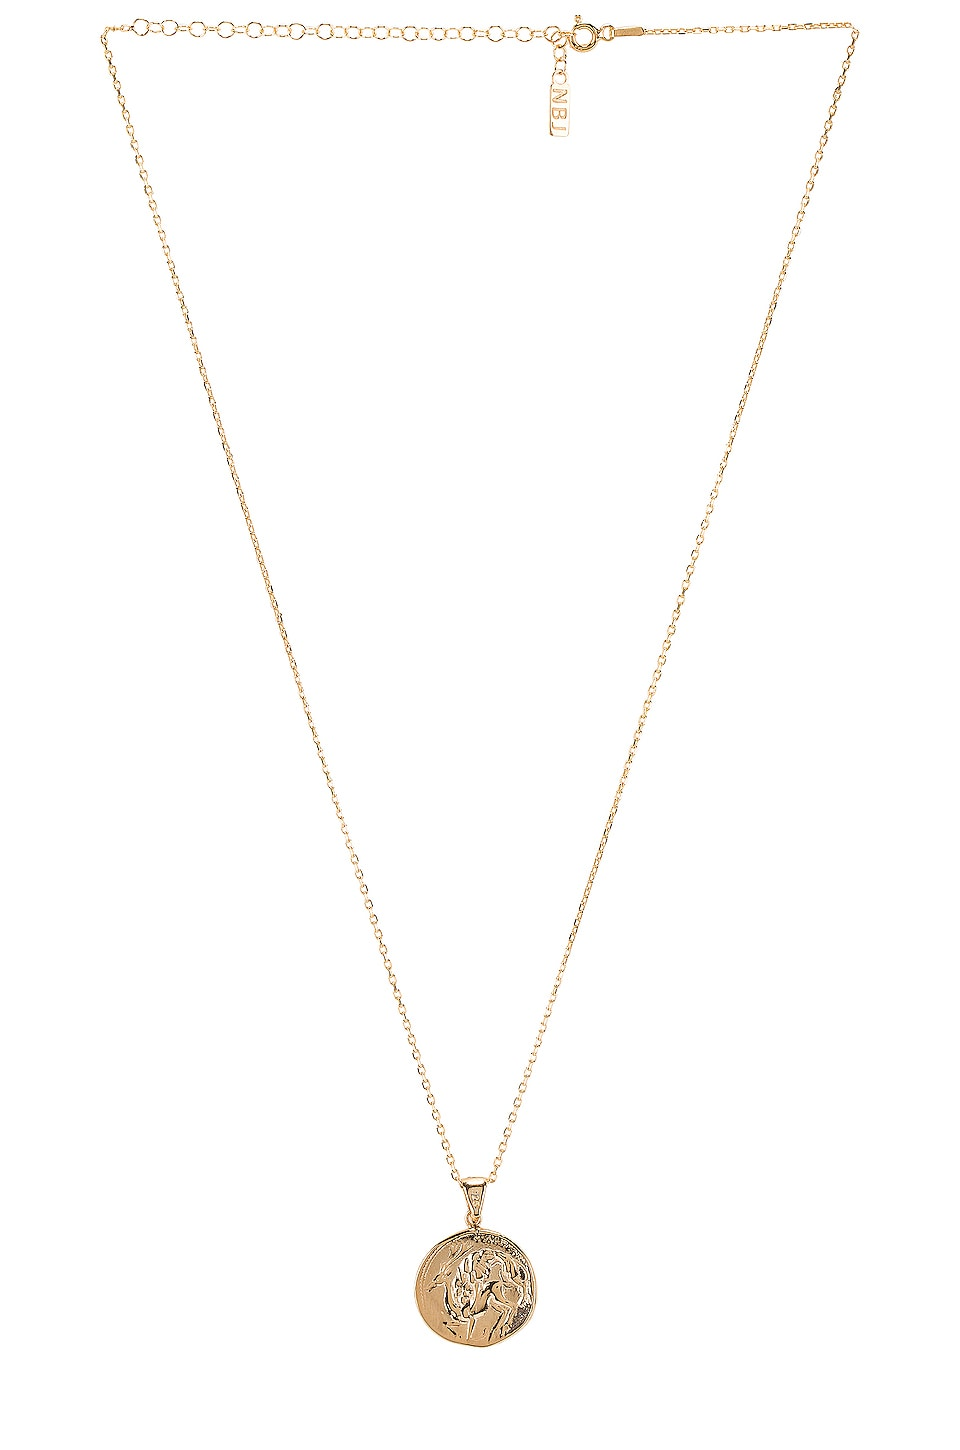 Natalie B Jewelry The Protector Reversible Coin Pendant Necklace in Gold